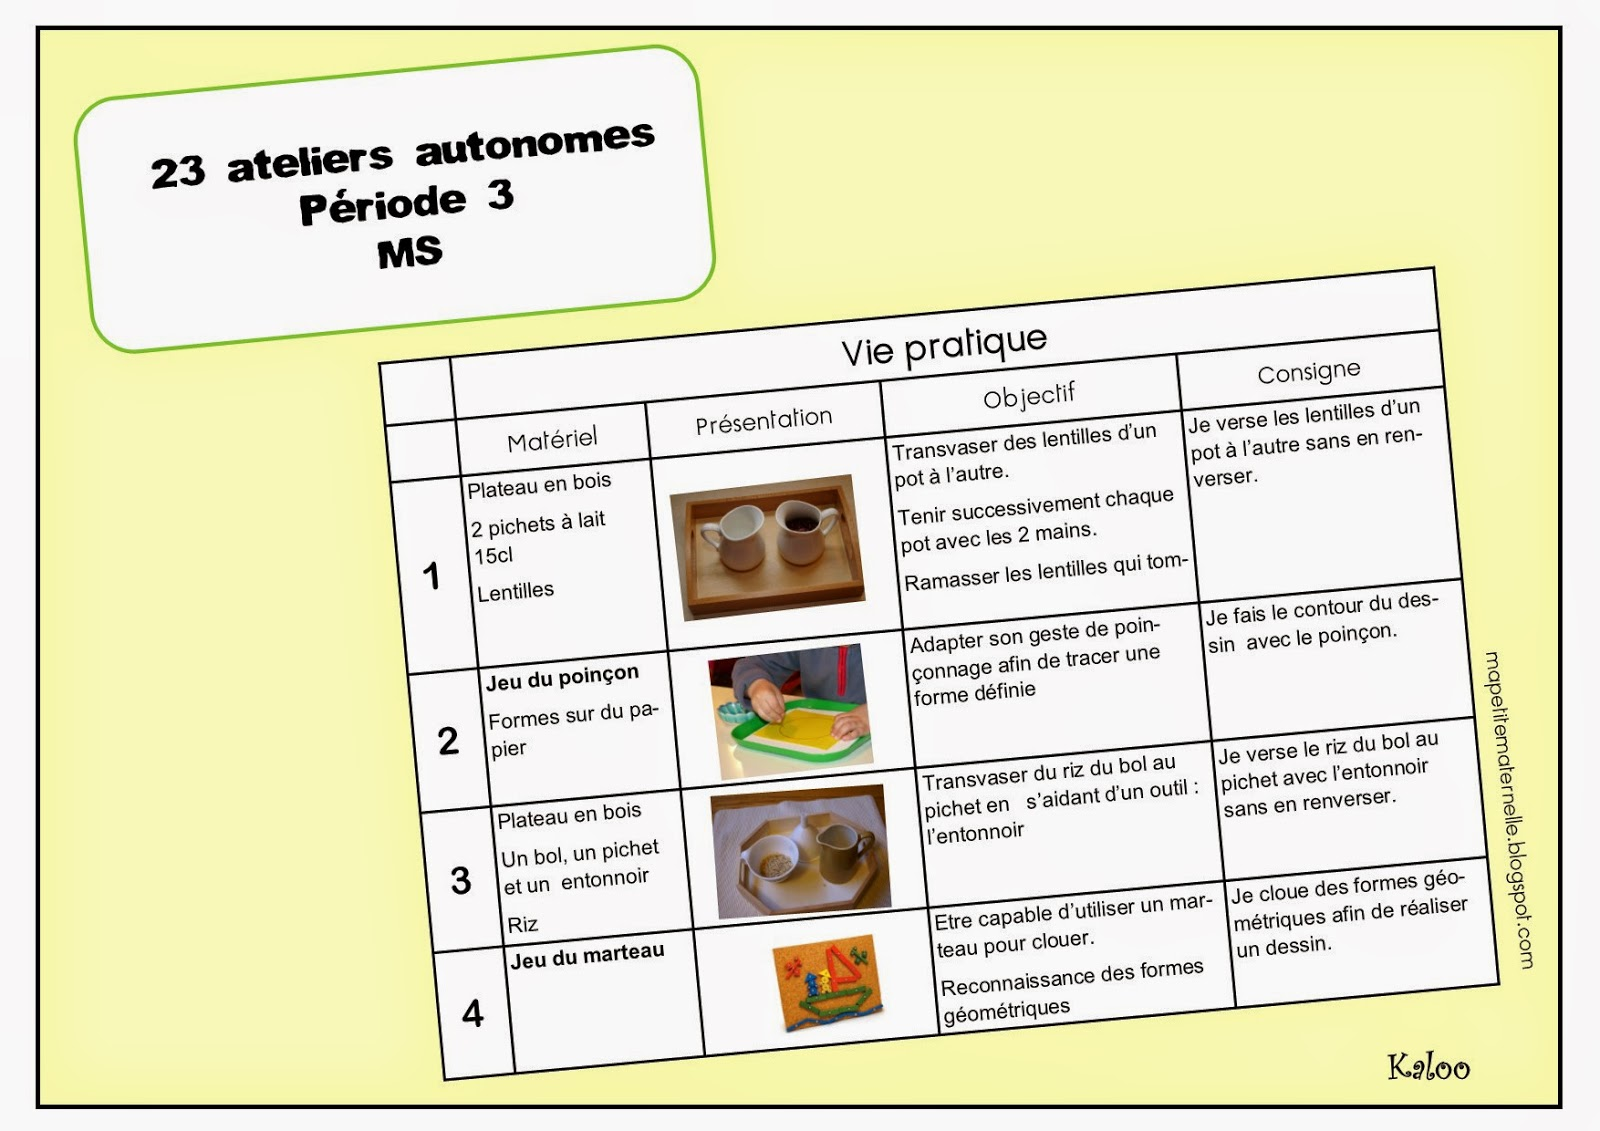 Super Ateliers autonomes type Montessori - période 3 TH52